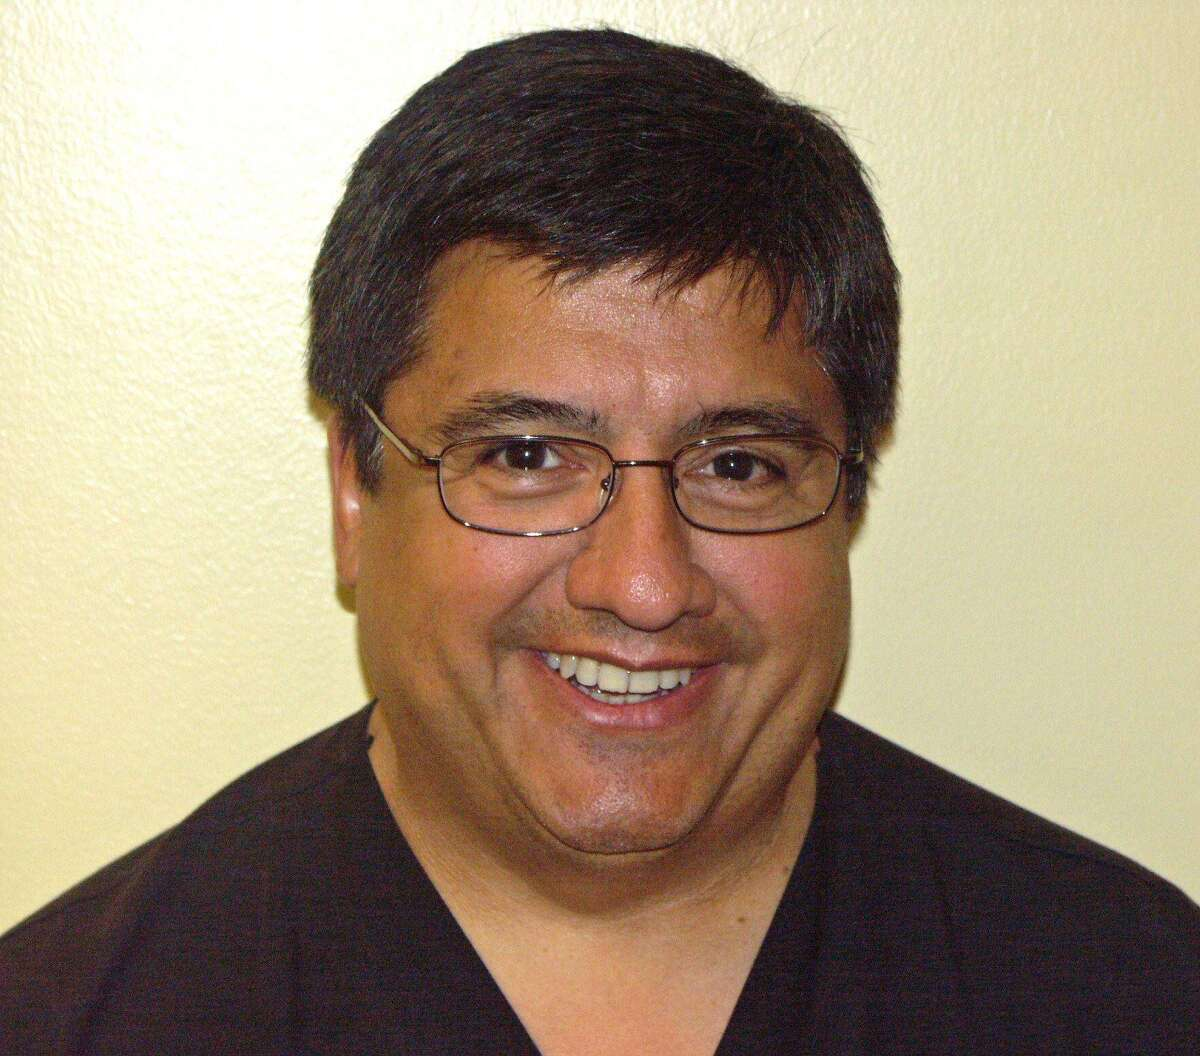 Dr. Joe Anzaldua, MD, is a local health authority with the city of Sugar Land .